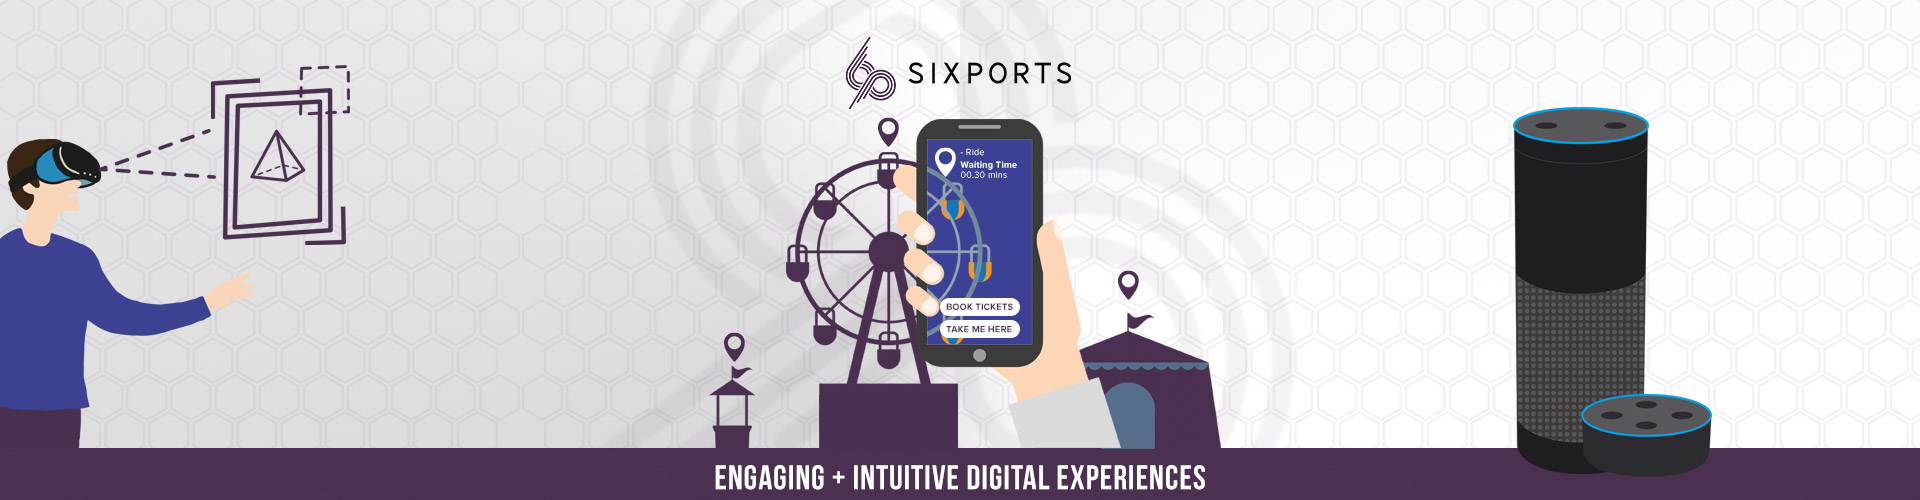 Have you checked out our sister company SixPorts?